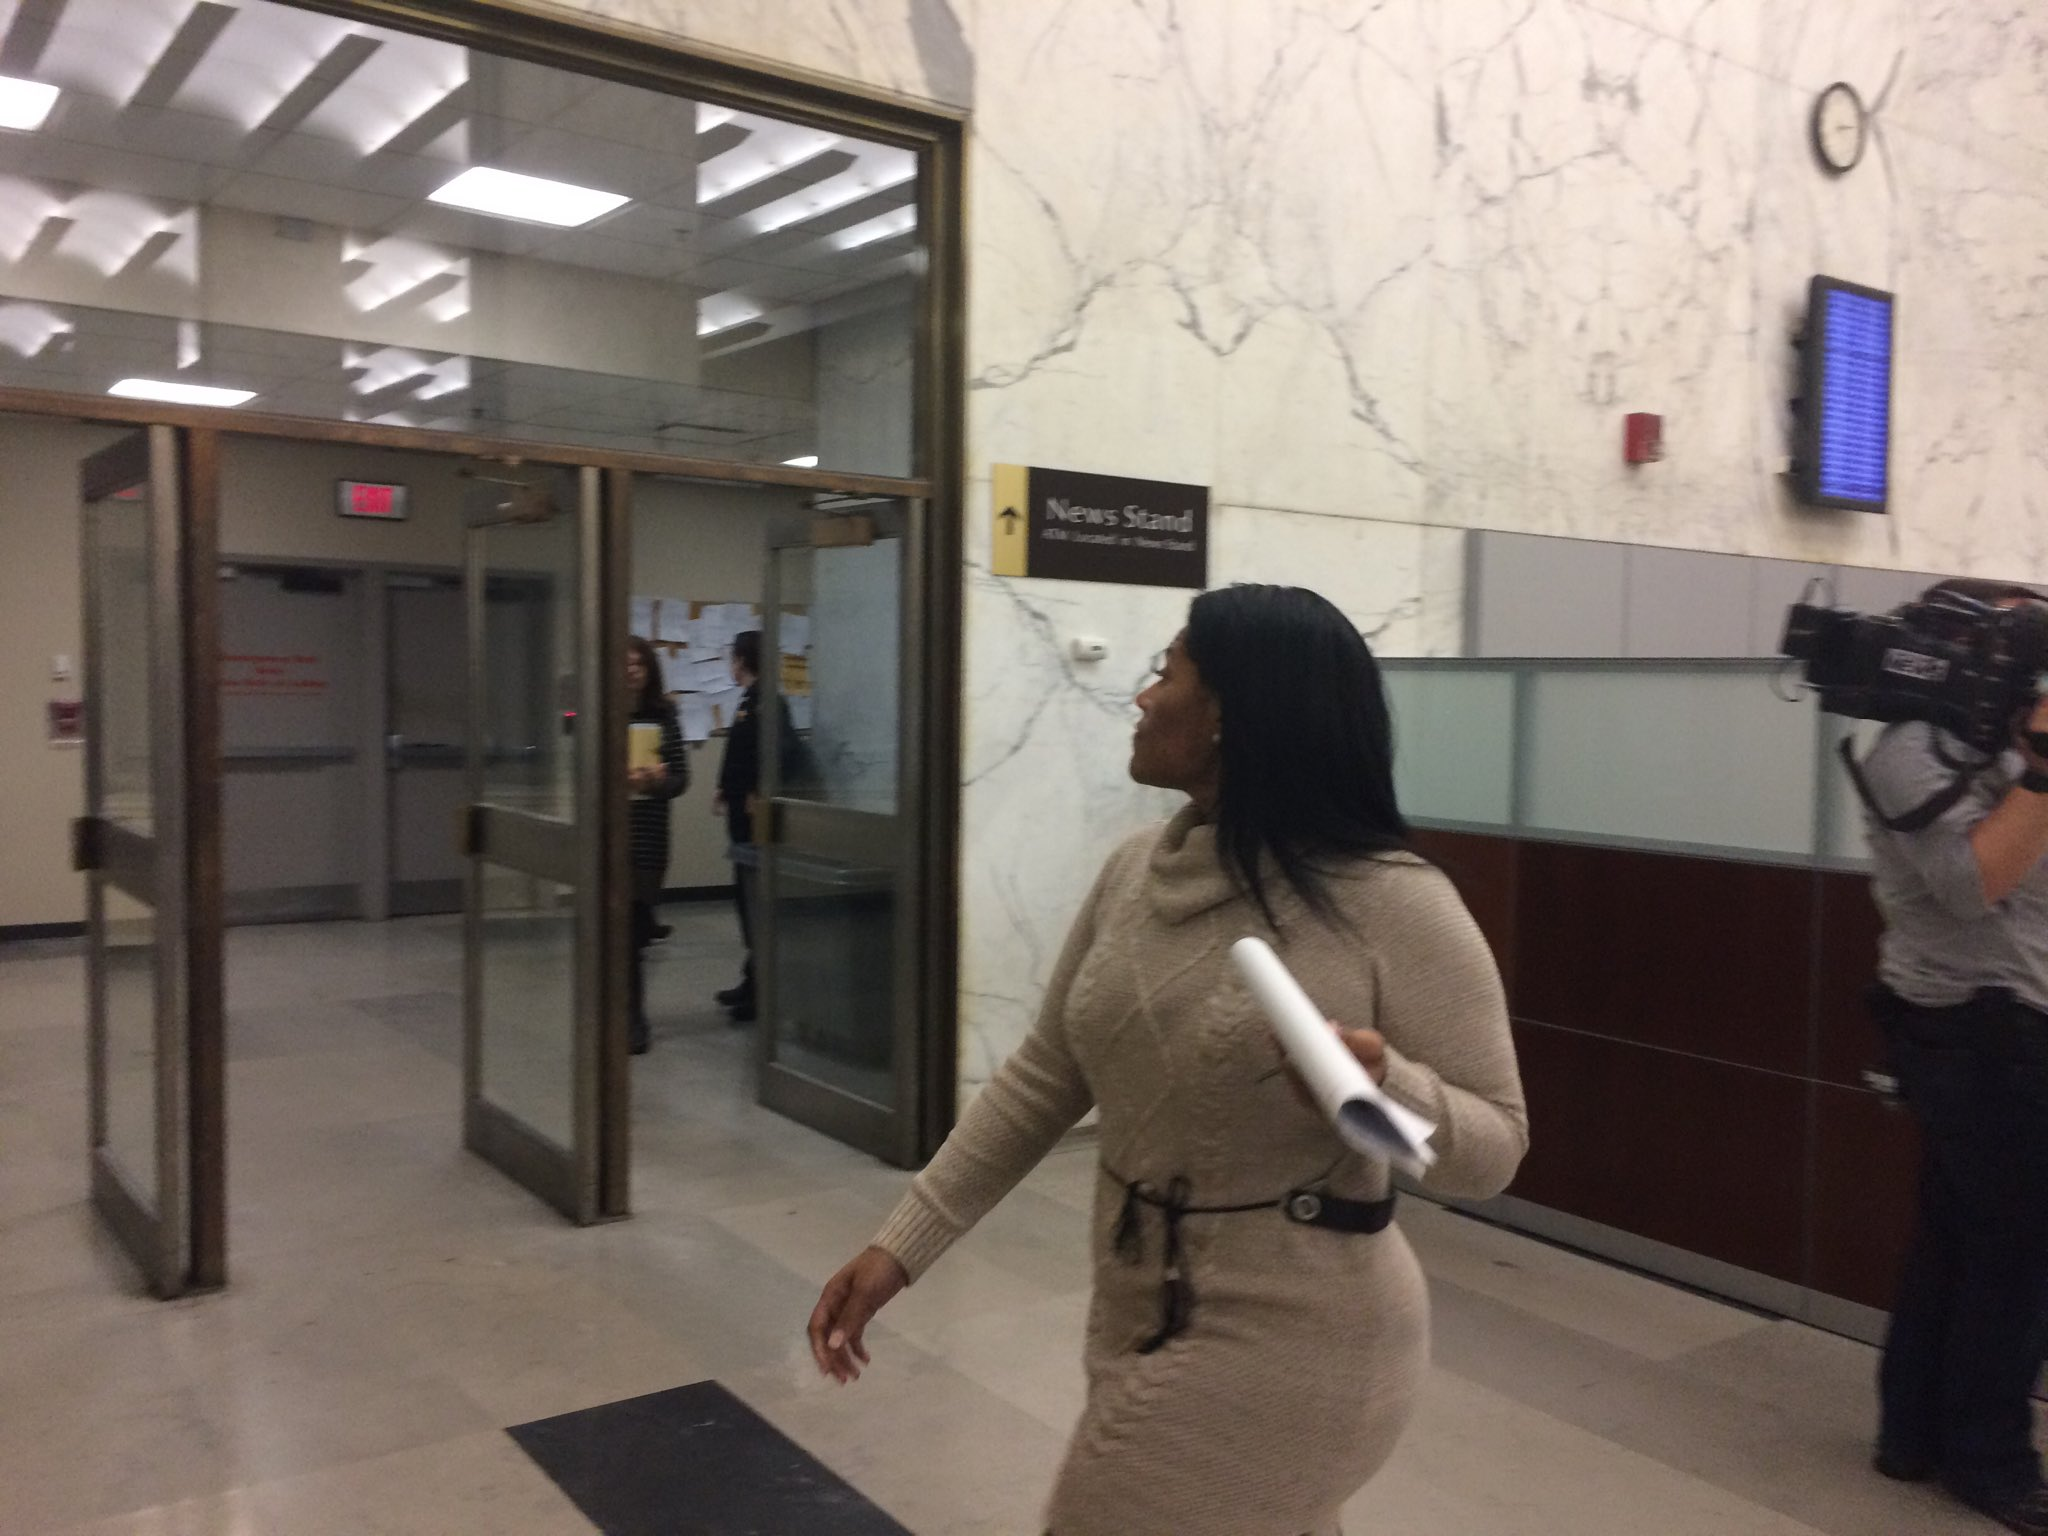 11-9-17 Astacio in court.jpg